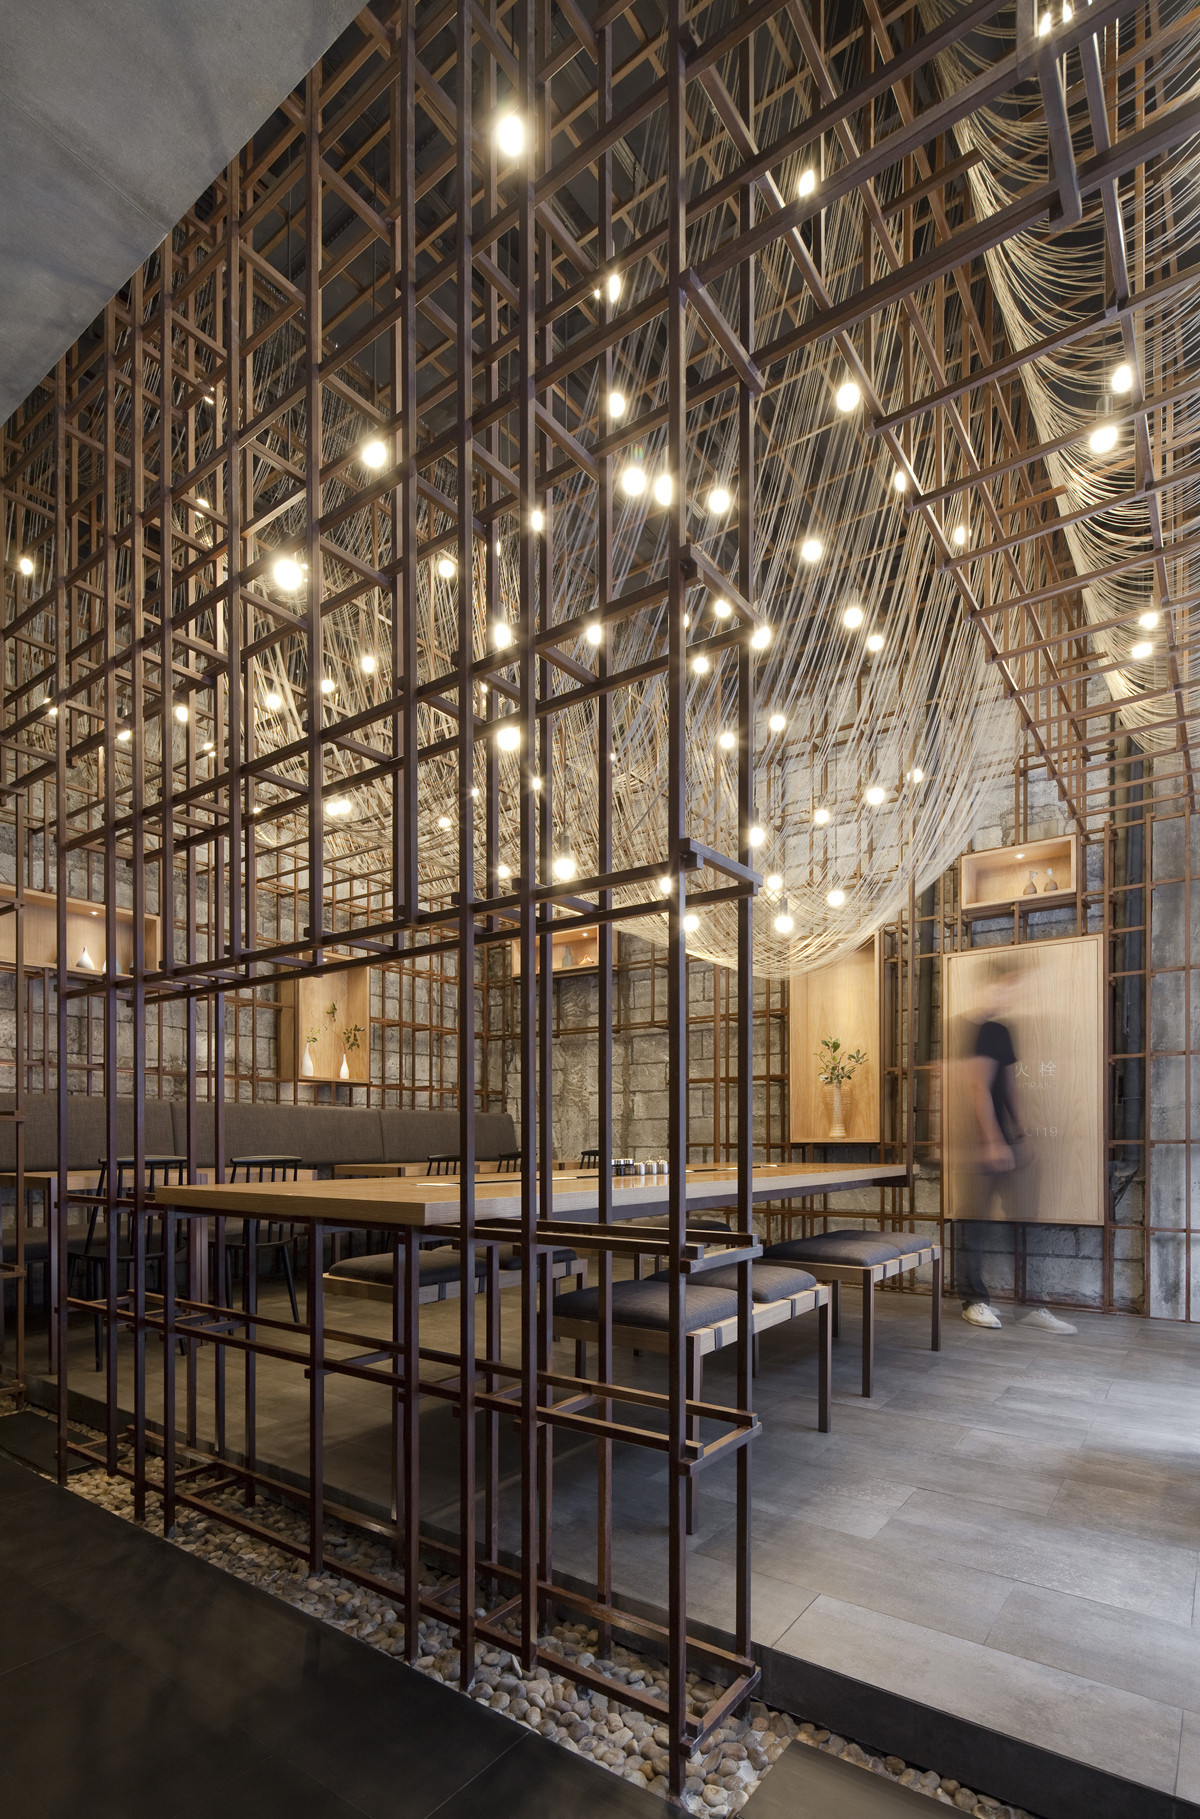 The noodle rack lukstudio archdaily for Ristoranti design